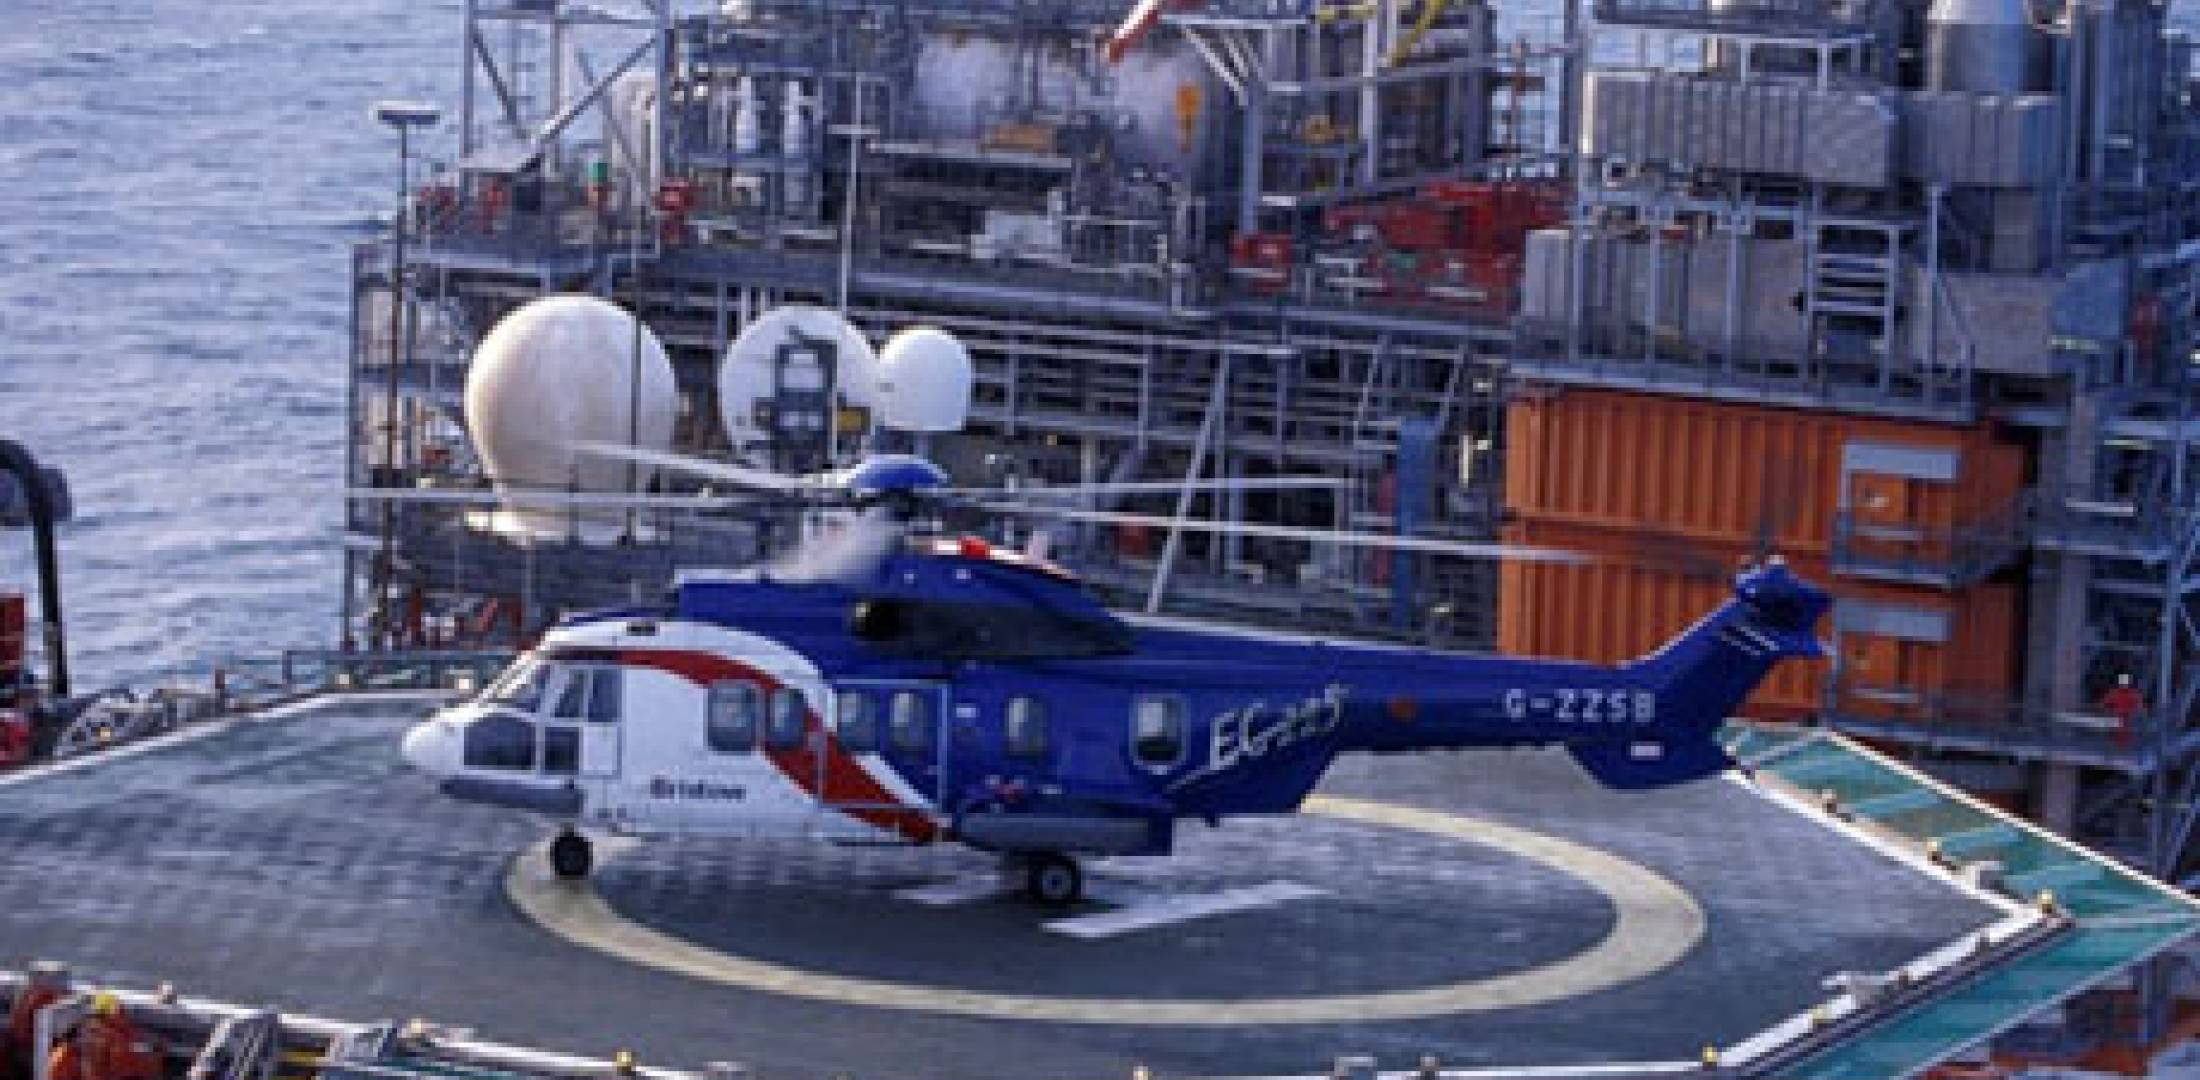 Eurocopter Sees EC225 Solution in April | Business Aviation